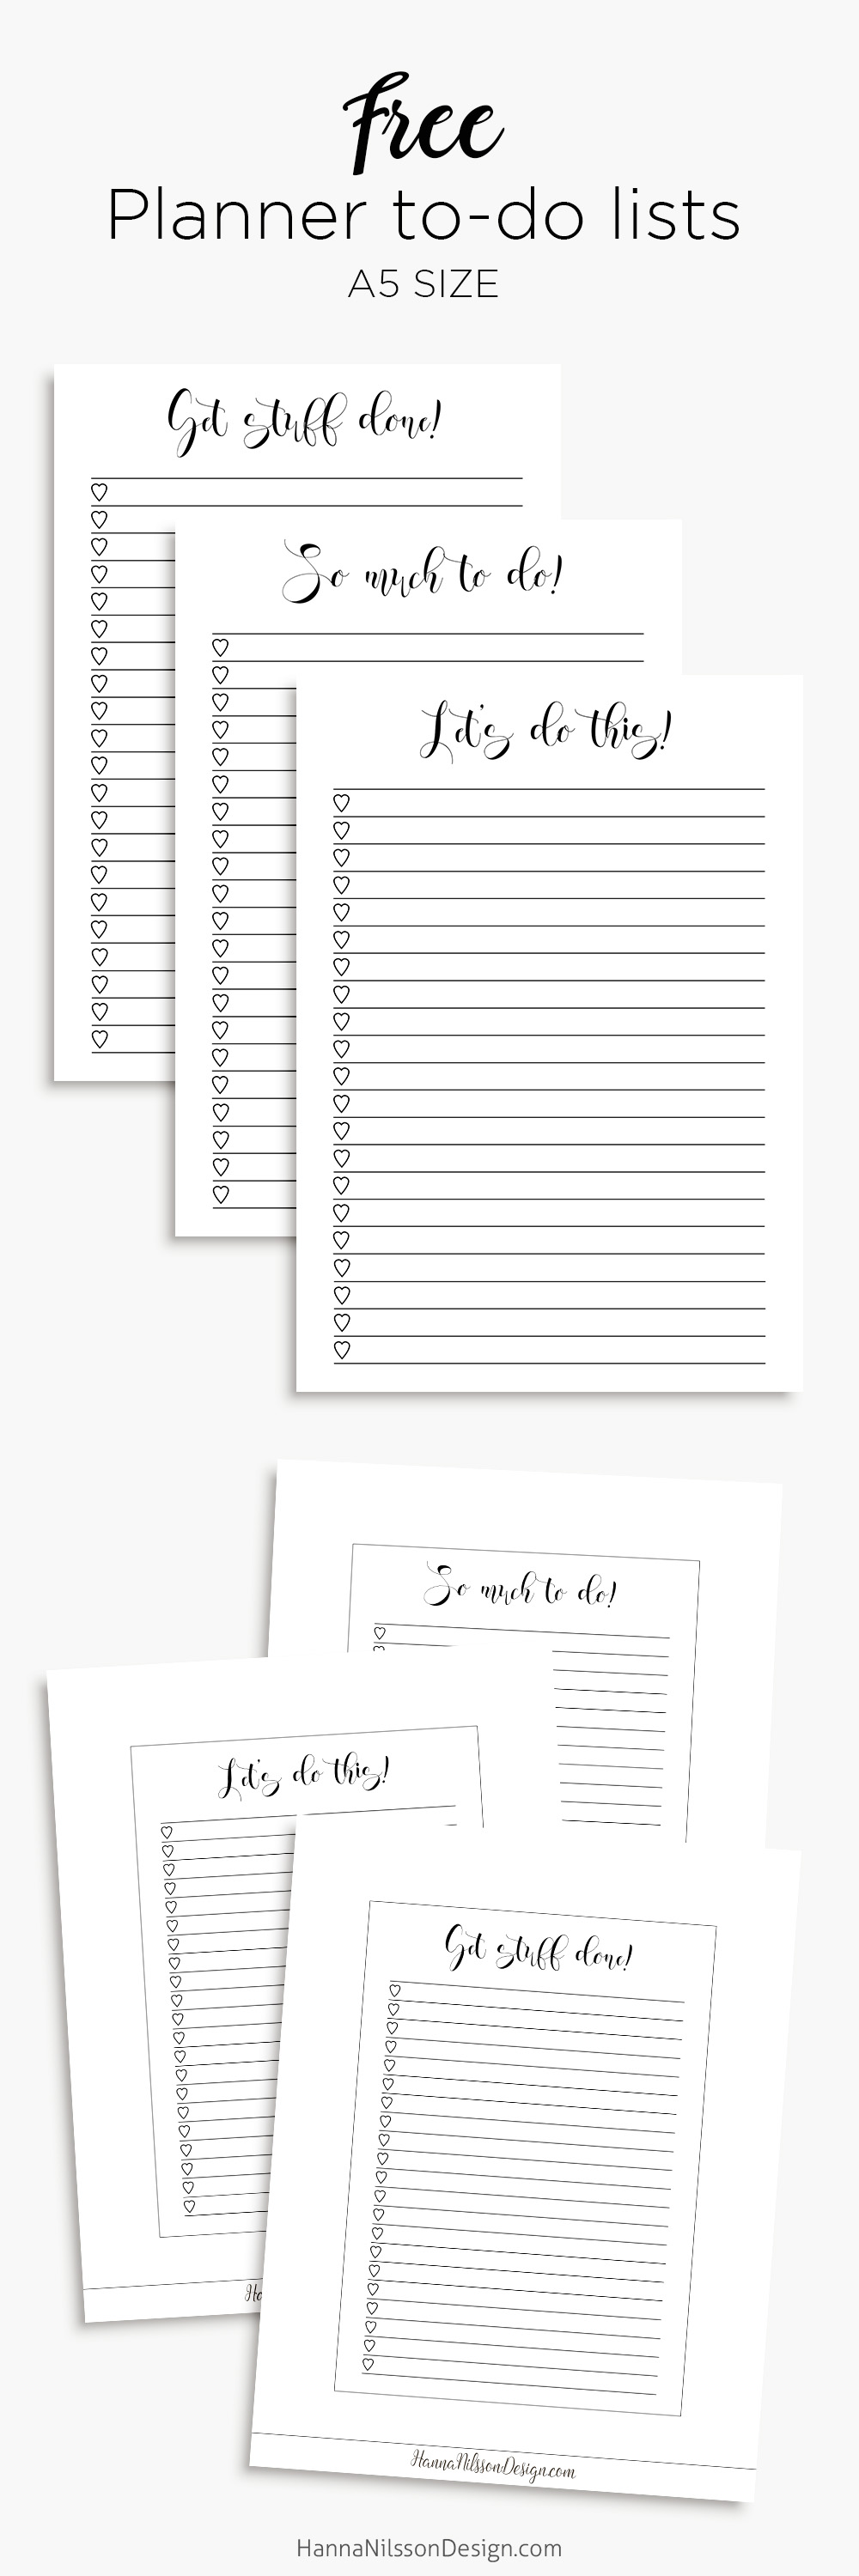 to do list layout